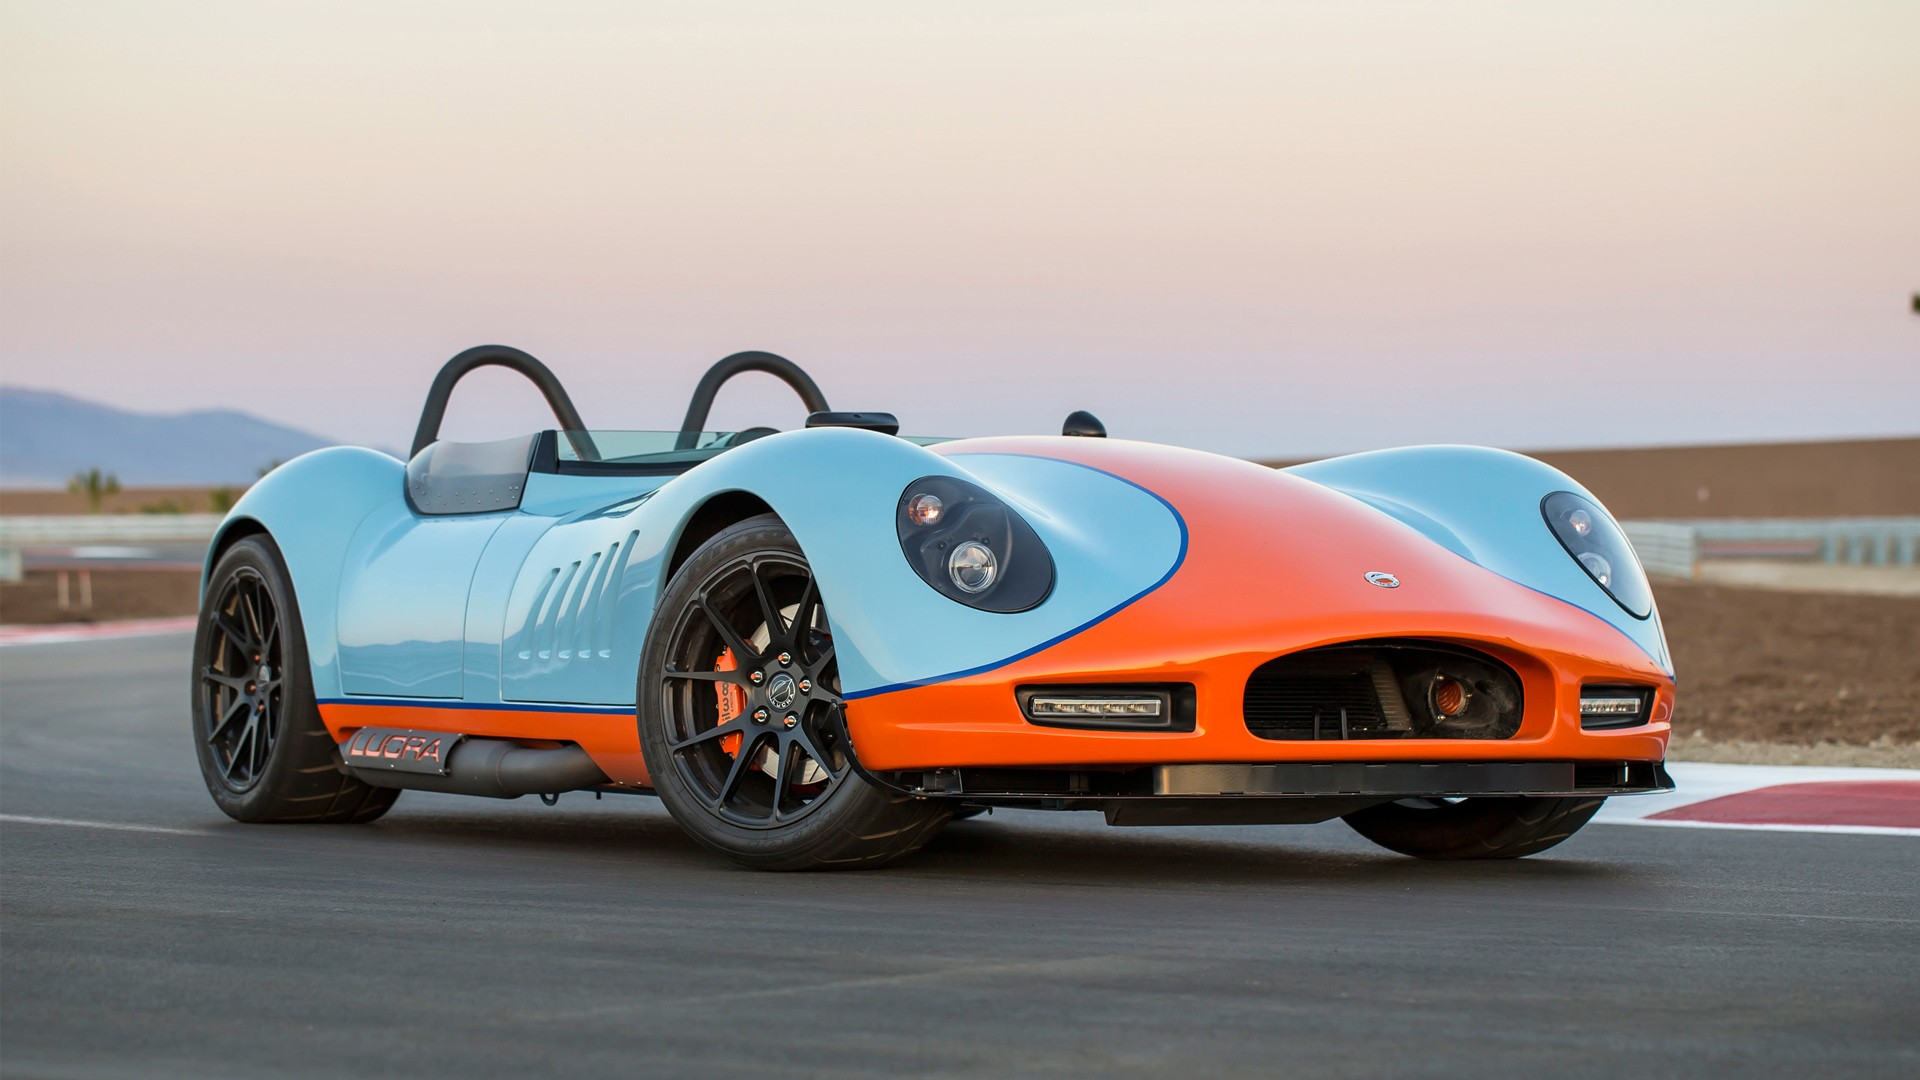 2013 Lucra LC470 Gulf Racing Wallpaper | HD Car Wallpapers ...